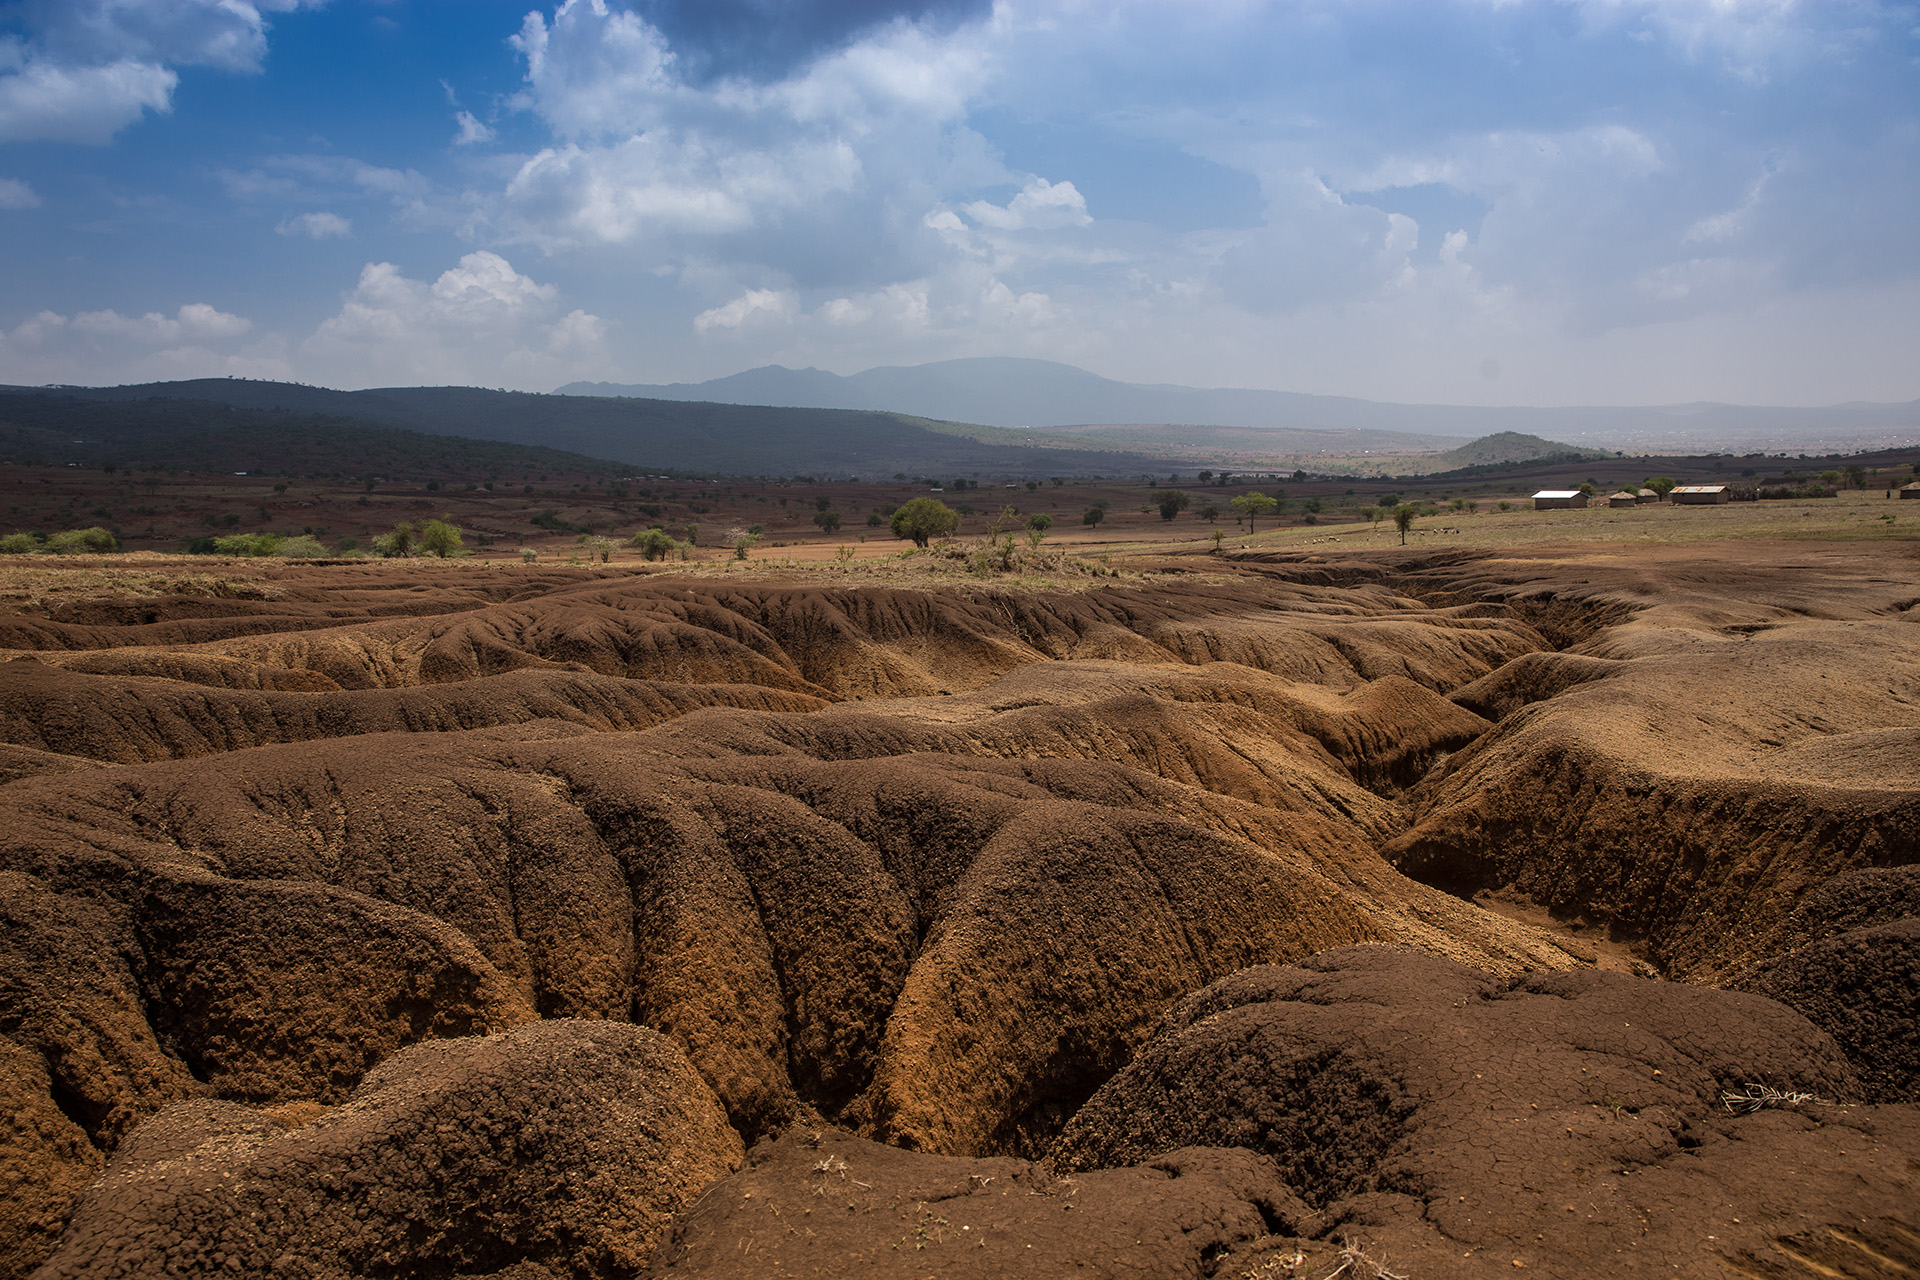 Over the past 10 years, the Tanzanian Maasai landscape has witnessed a dramatic increase in soil erosion with almost total destruction of the soil resource in many areas used for grazing of livestock